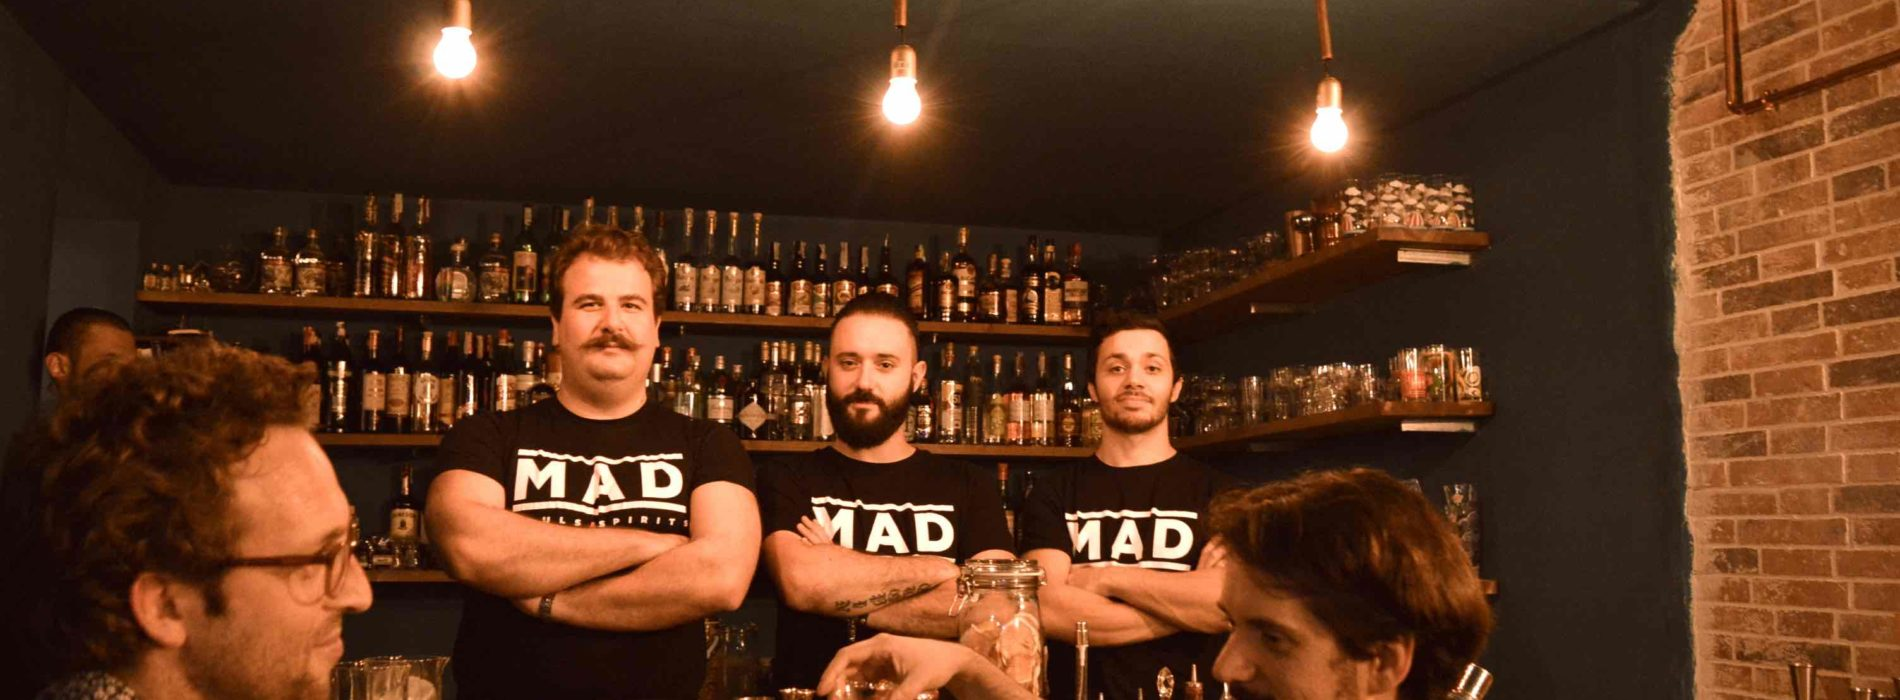 Mad souls&spirits Firenze, i cocktail dall'anima folle nel nuovo locale di San Frediano